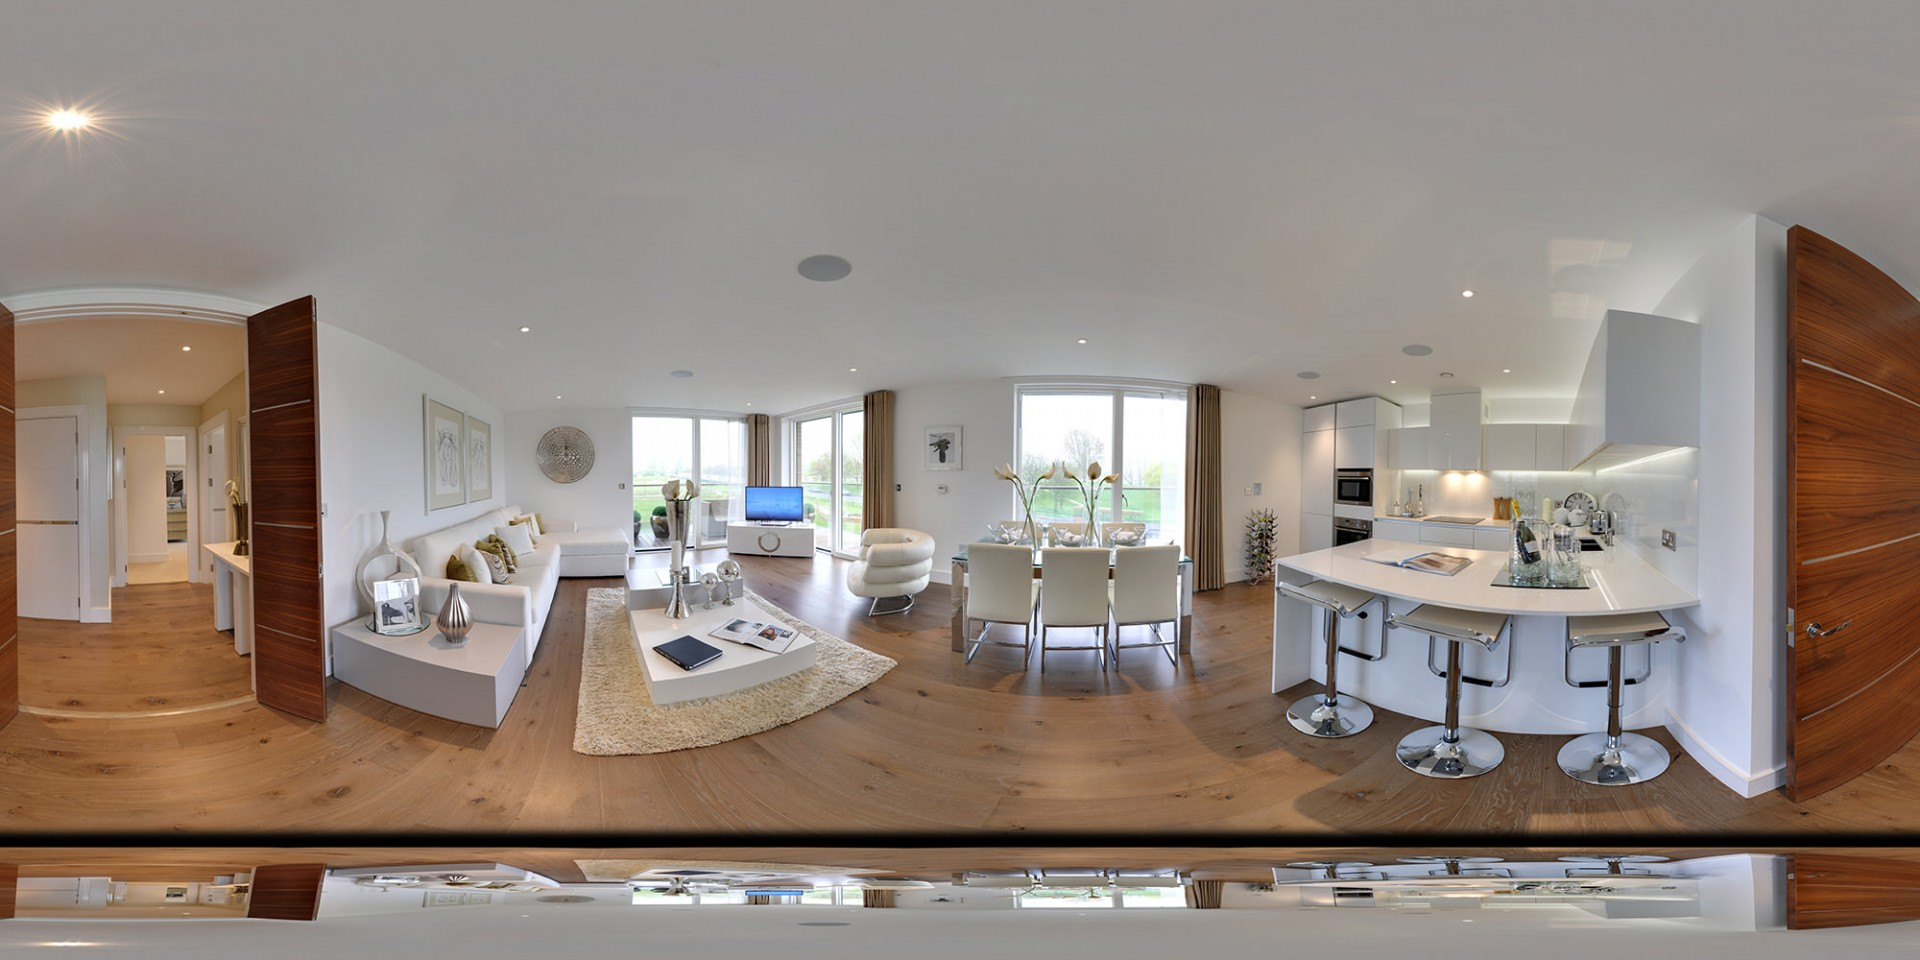 London Apartment. Click here to view panoramic image.